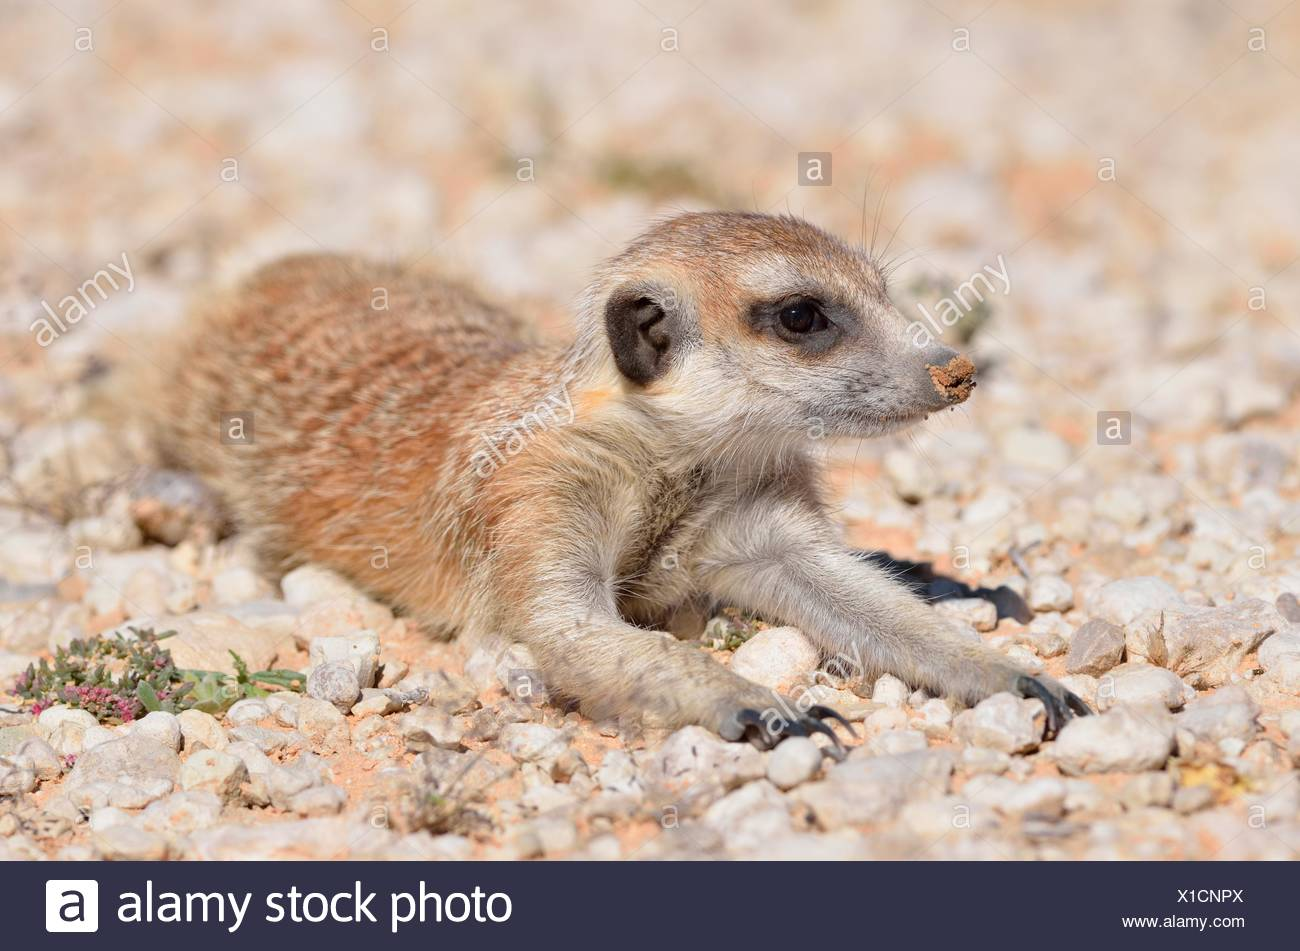 Meerkat (Suricata suricatta), young male, lying down on gravel, Kgalagadi Transfrontier Park, Northern Cape, South Africa - Stock Image